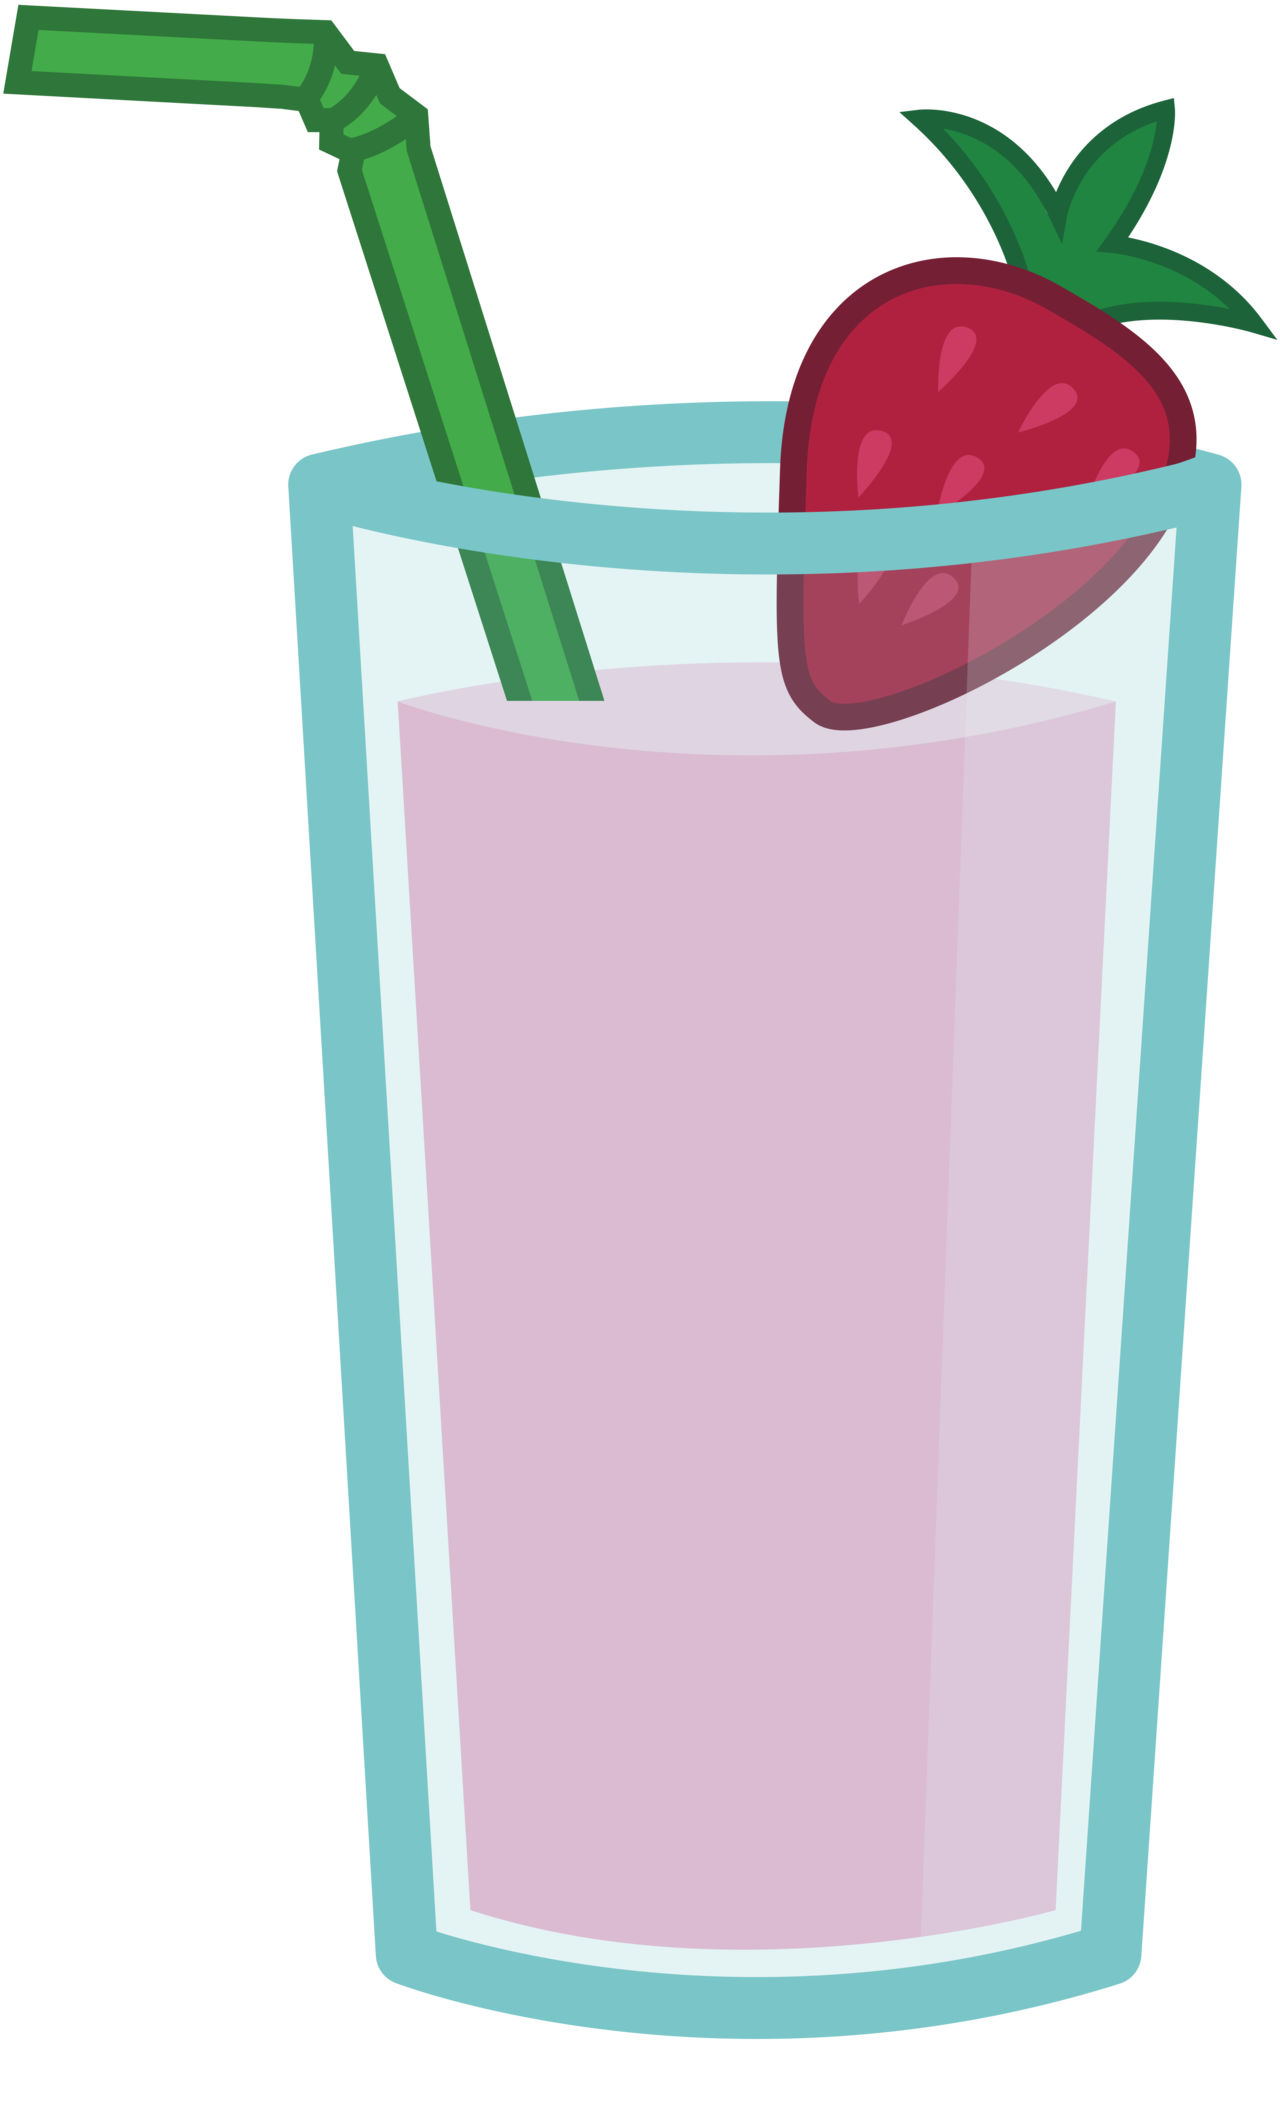 royalty free Free on dumielauxepices net. Green clipart milkshake